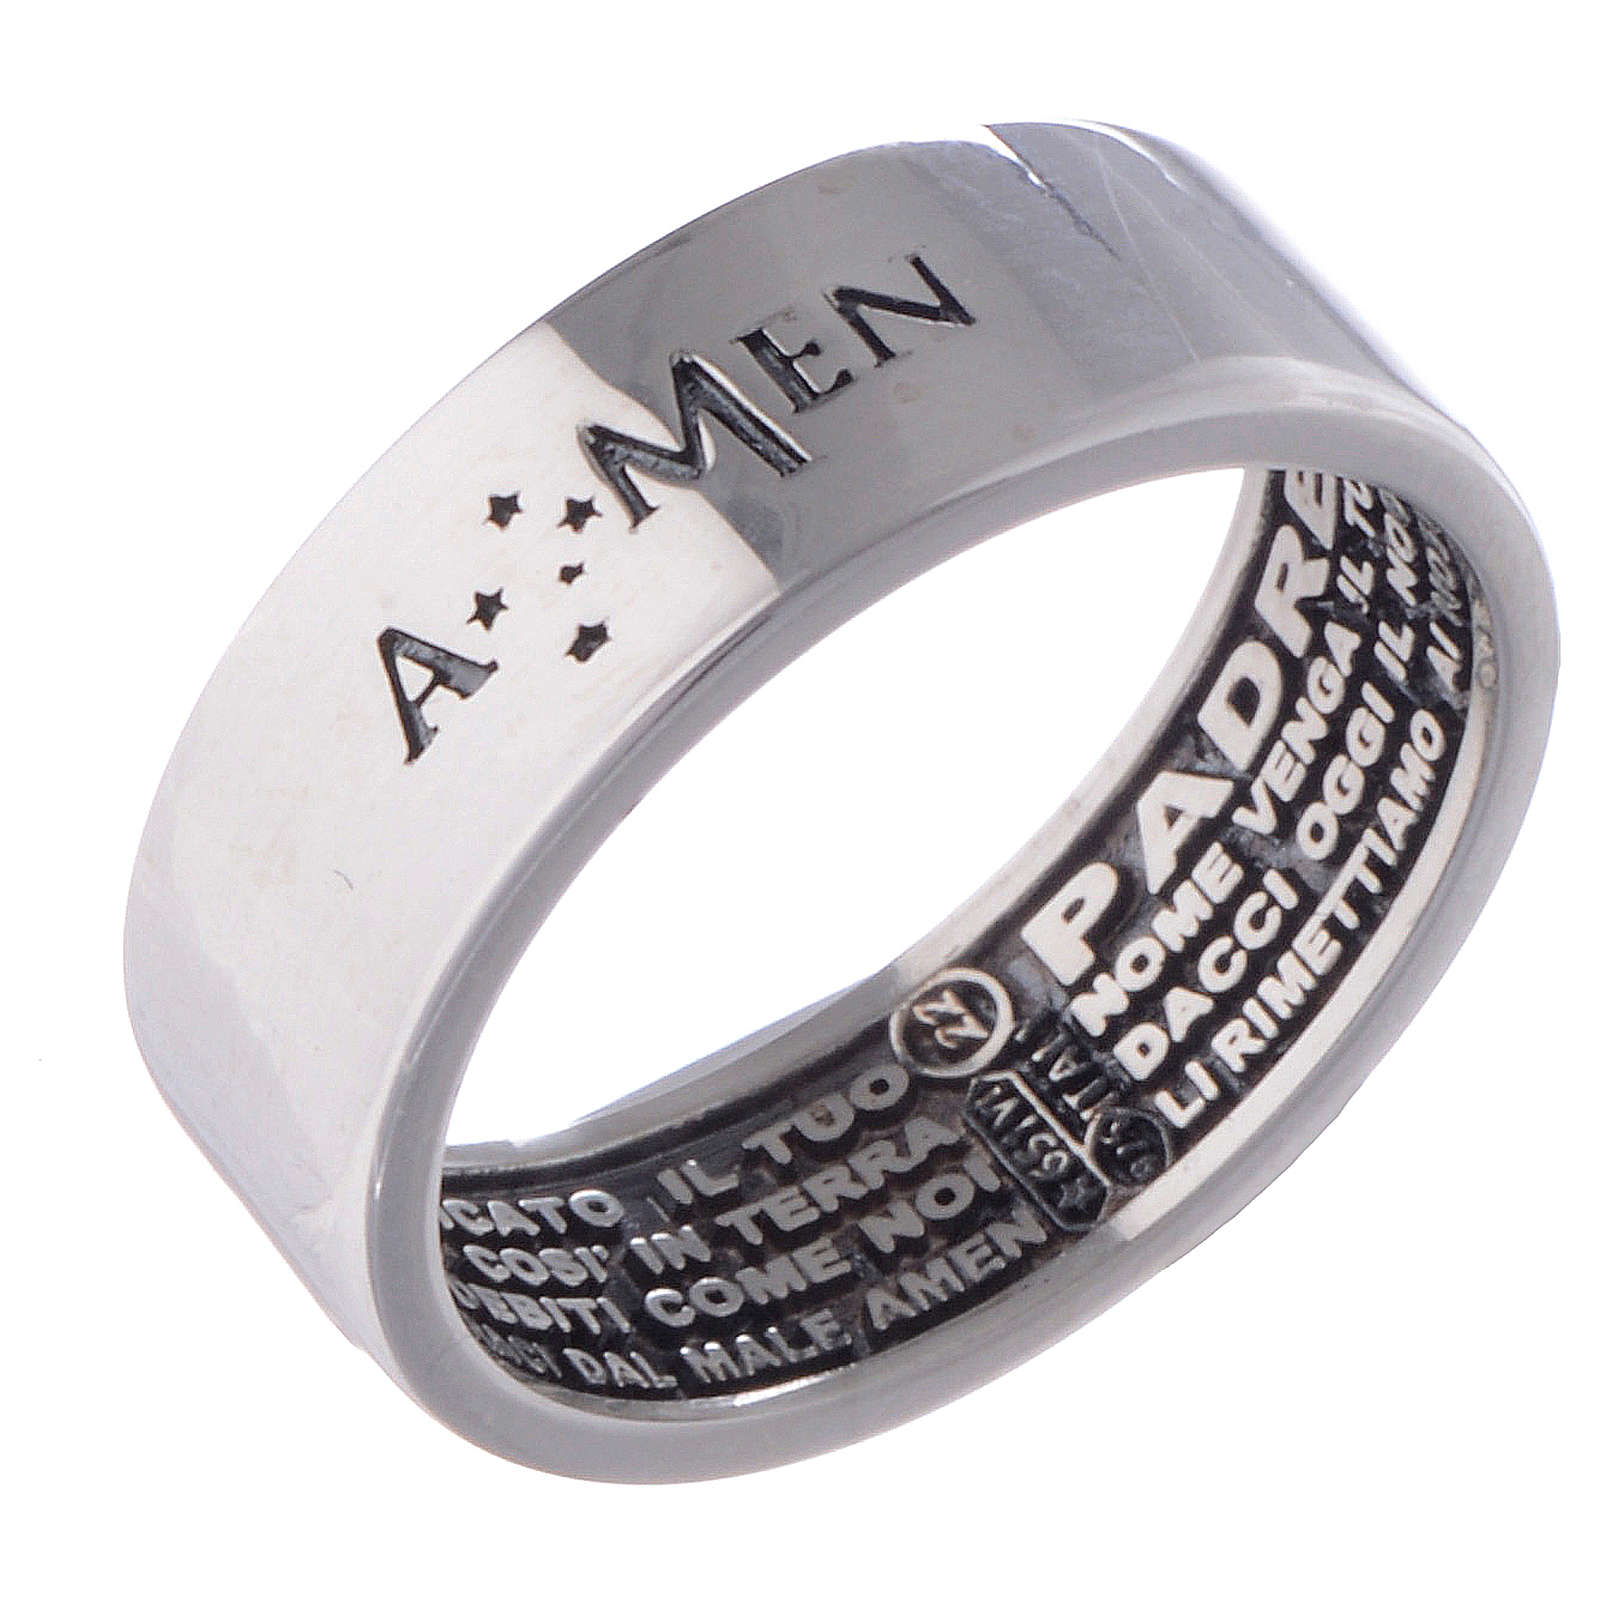 Prayer ring Our Father silver internal engraving in Italian AMEN 3